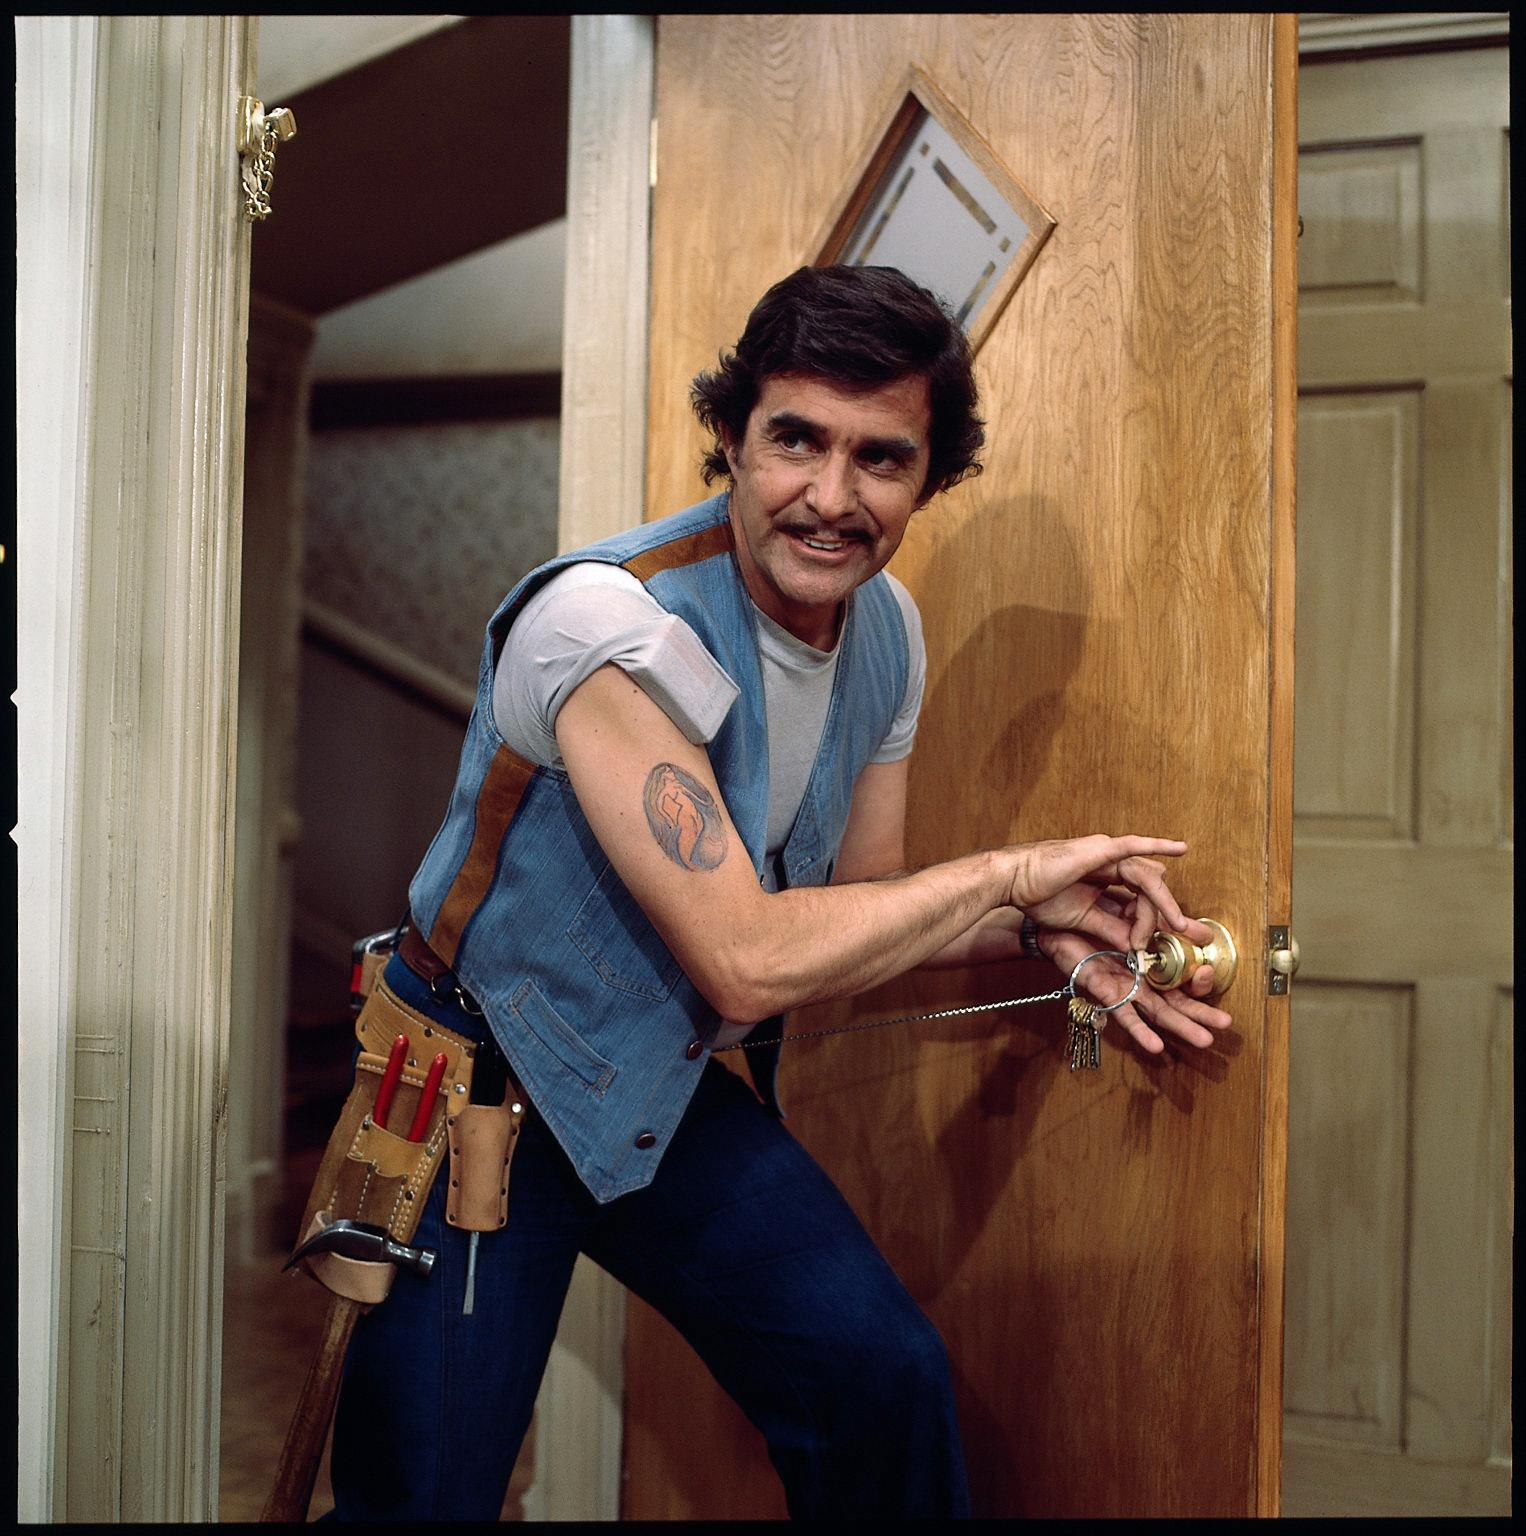 """<p>Pat Harrington Jr., an actor known best for his role as Schneider on """"One Day at a Time,"""" died on January 6 at 86. — (Pictured) 'One Day at a Time' cast member, Pat Harrington, Jr. as building superintendent Dwayne Schneider. (CBS via Getty Images) </p>"""